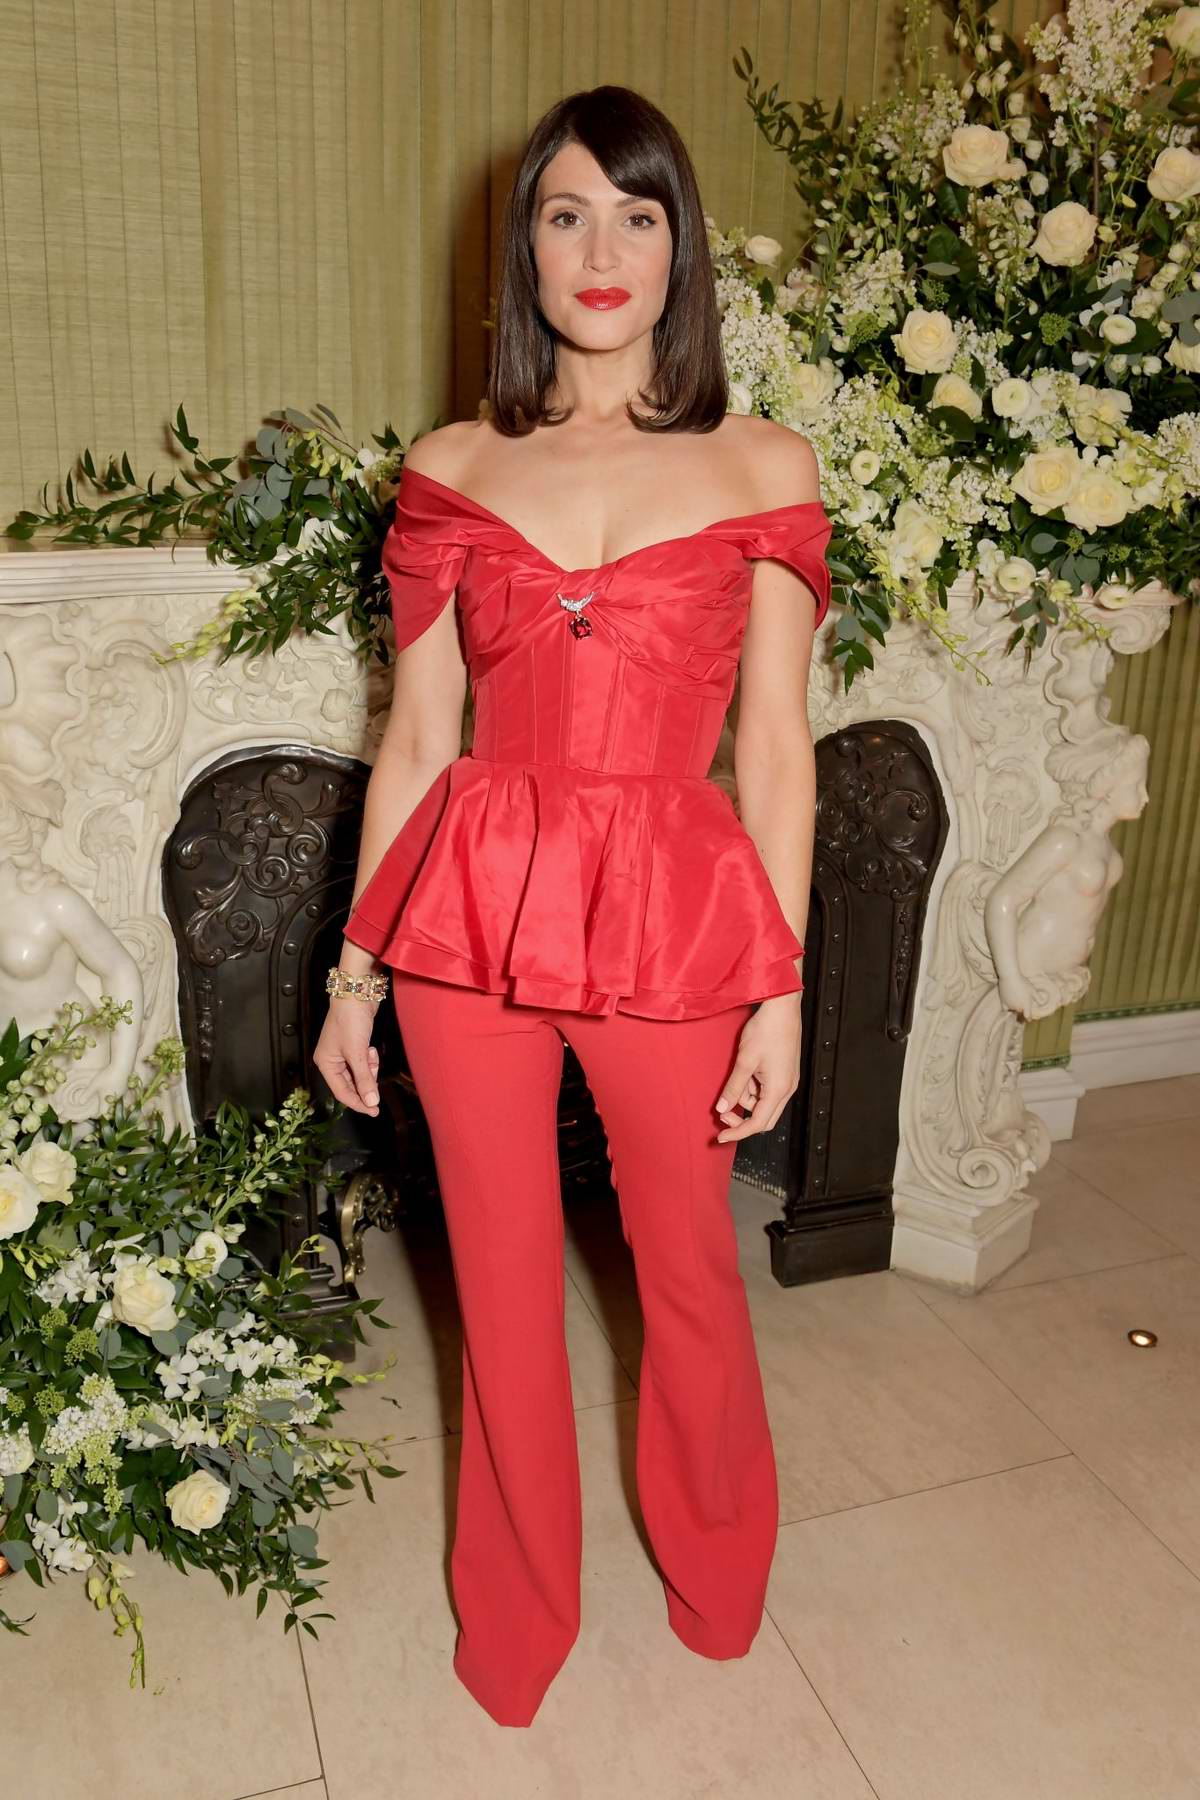 Gemma Arterton attends BAFTA 2020 Vogue x Tiffany Fashion and Film after-party in London, UK